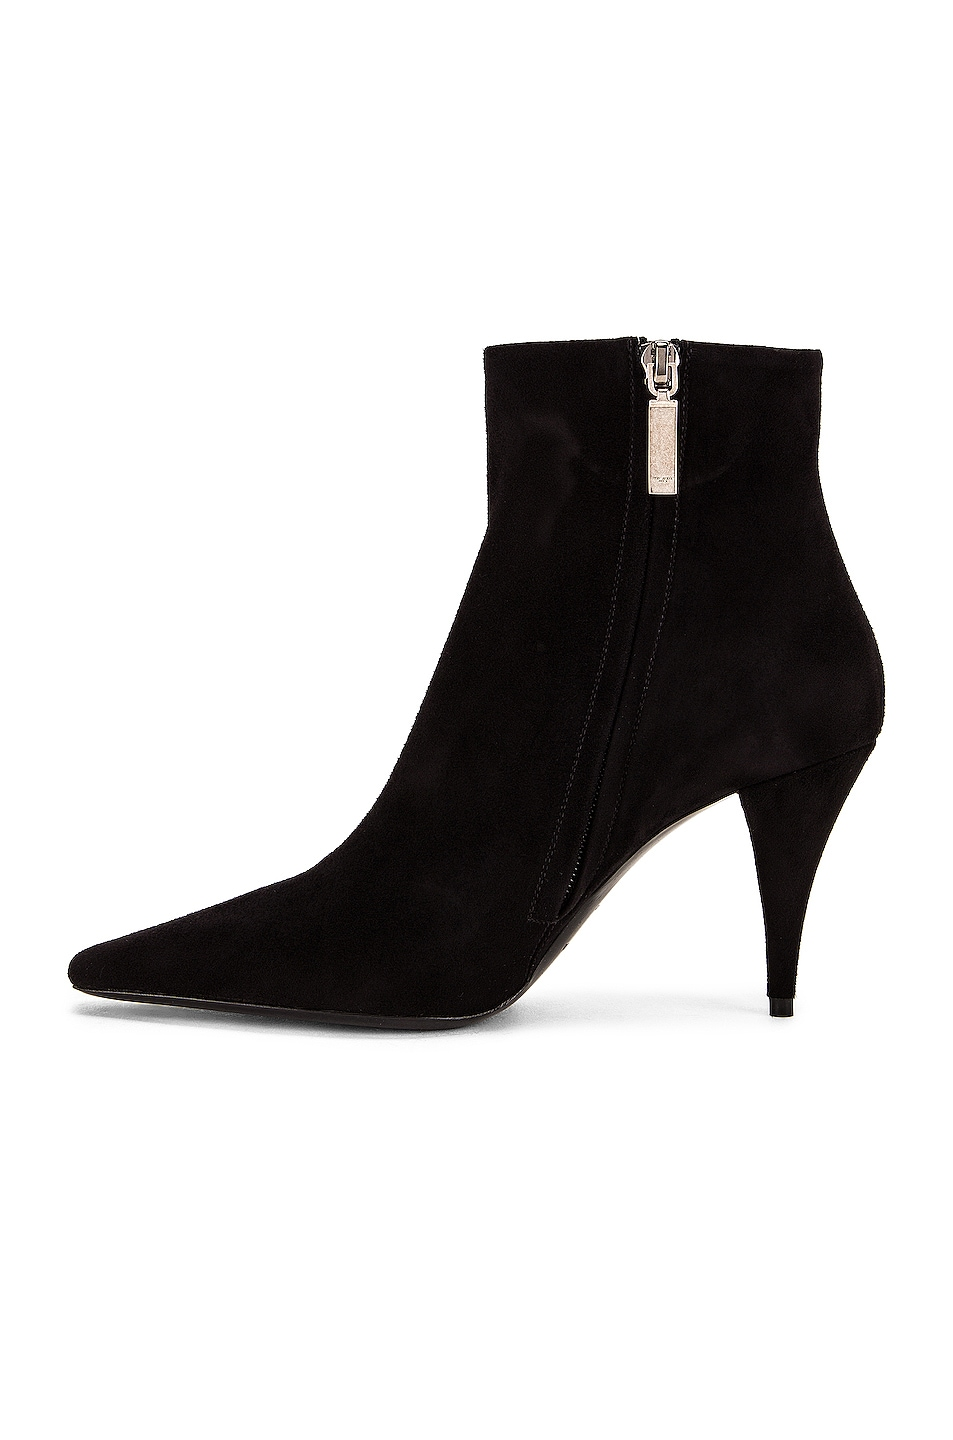 Saint Laurent Kiki Zip Booties Black outlet